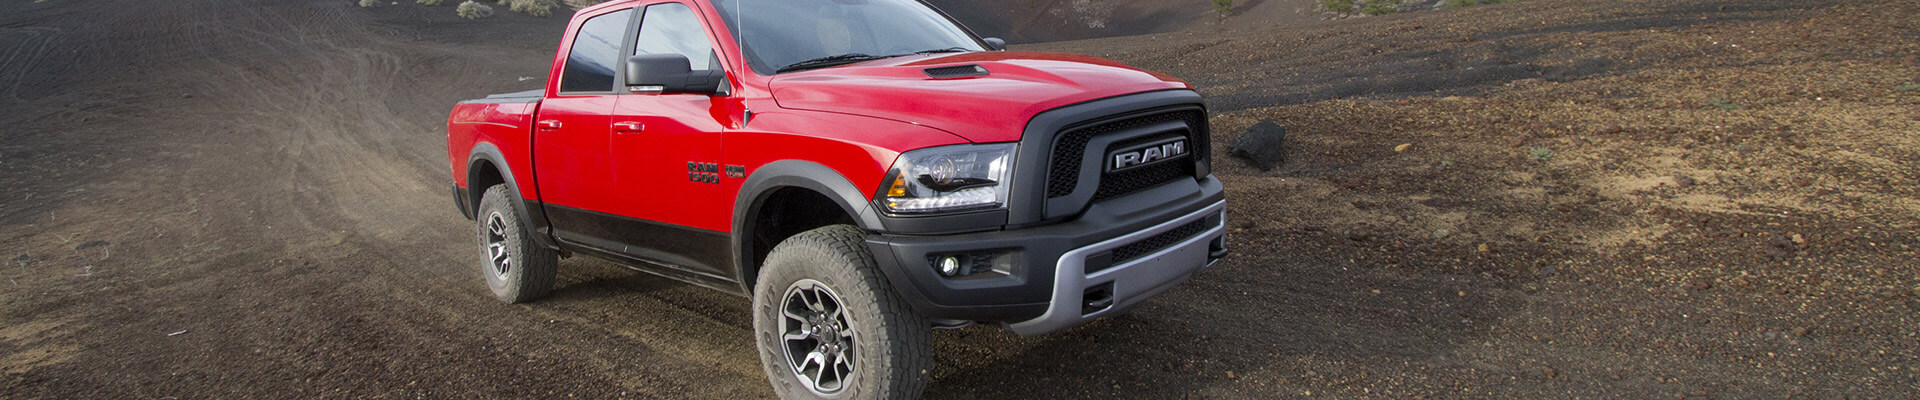 Genuine Dodge Ram Parts & Accessories